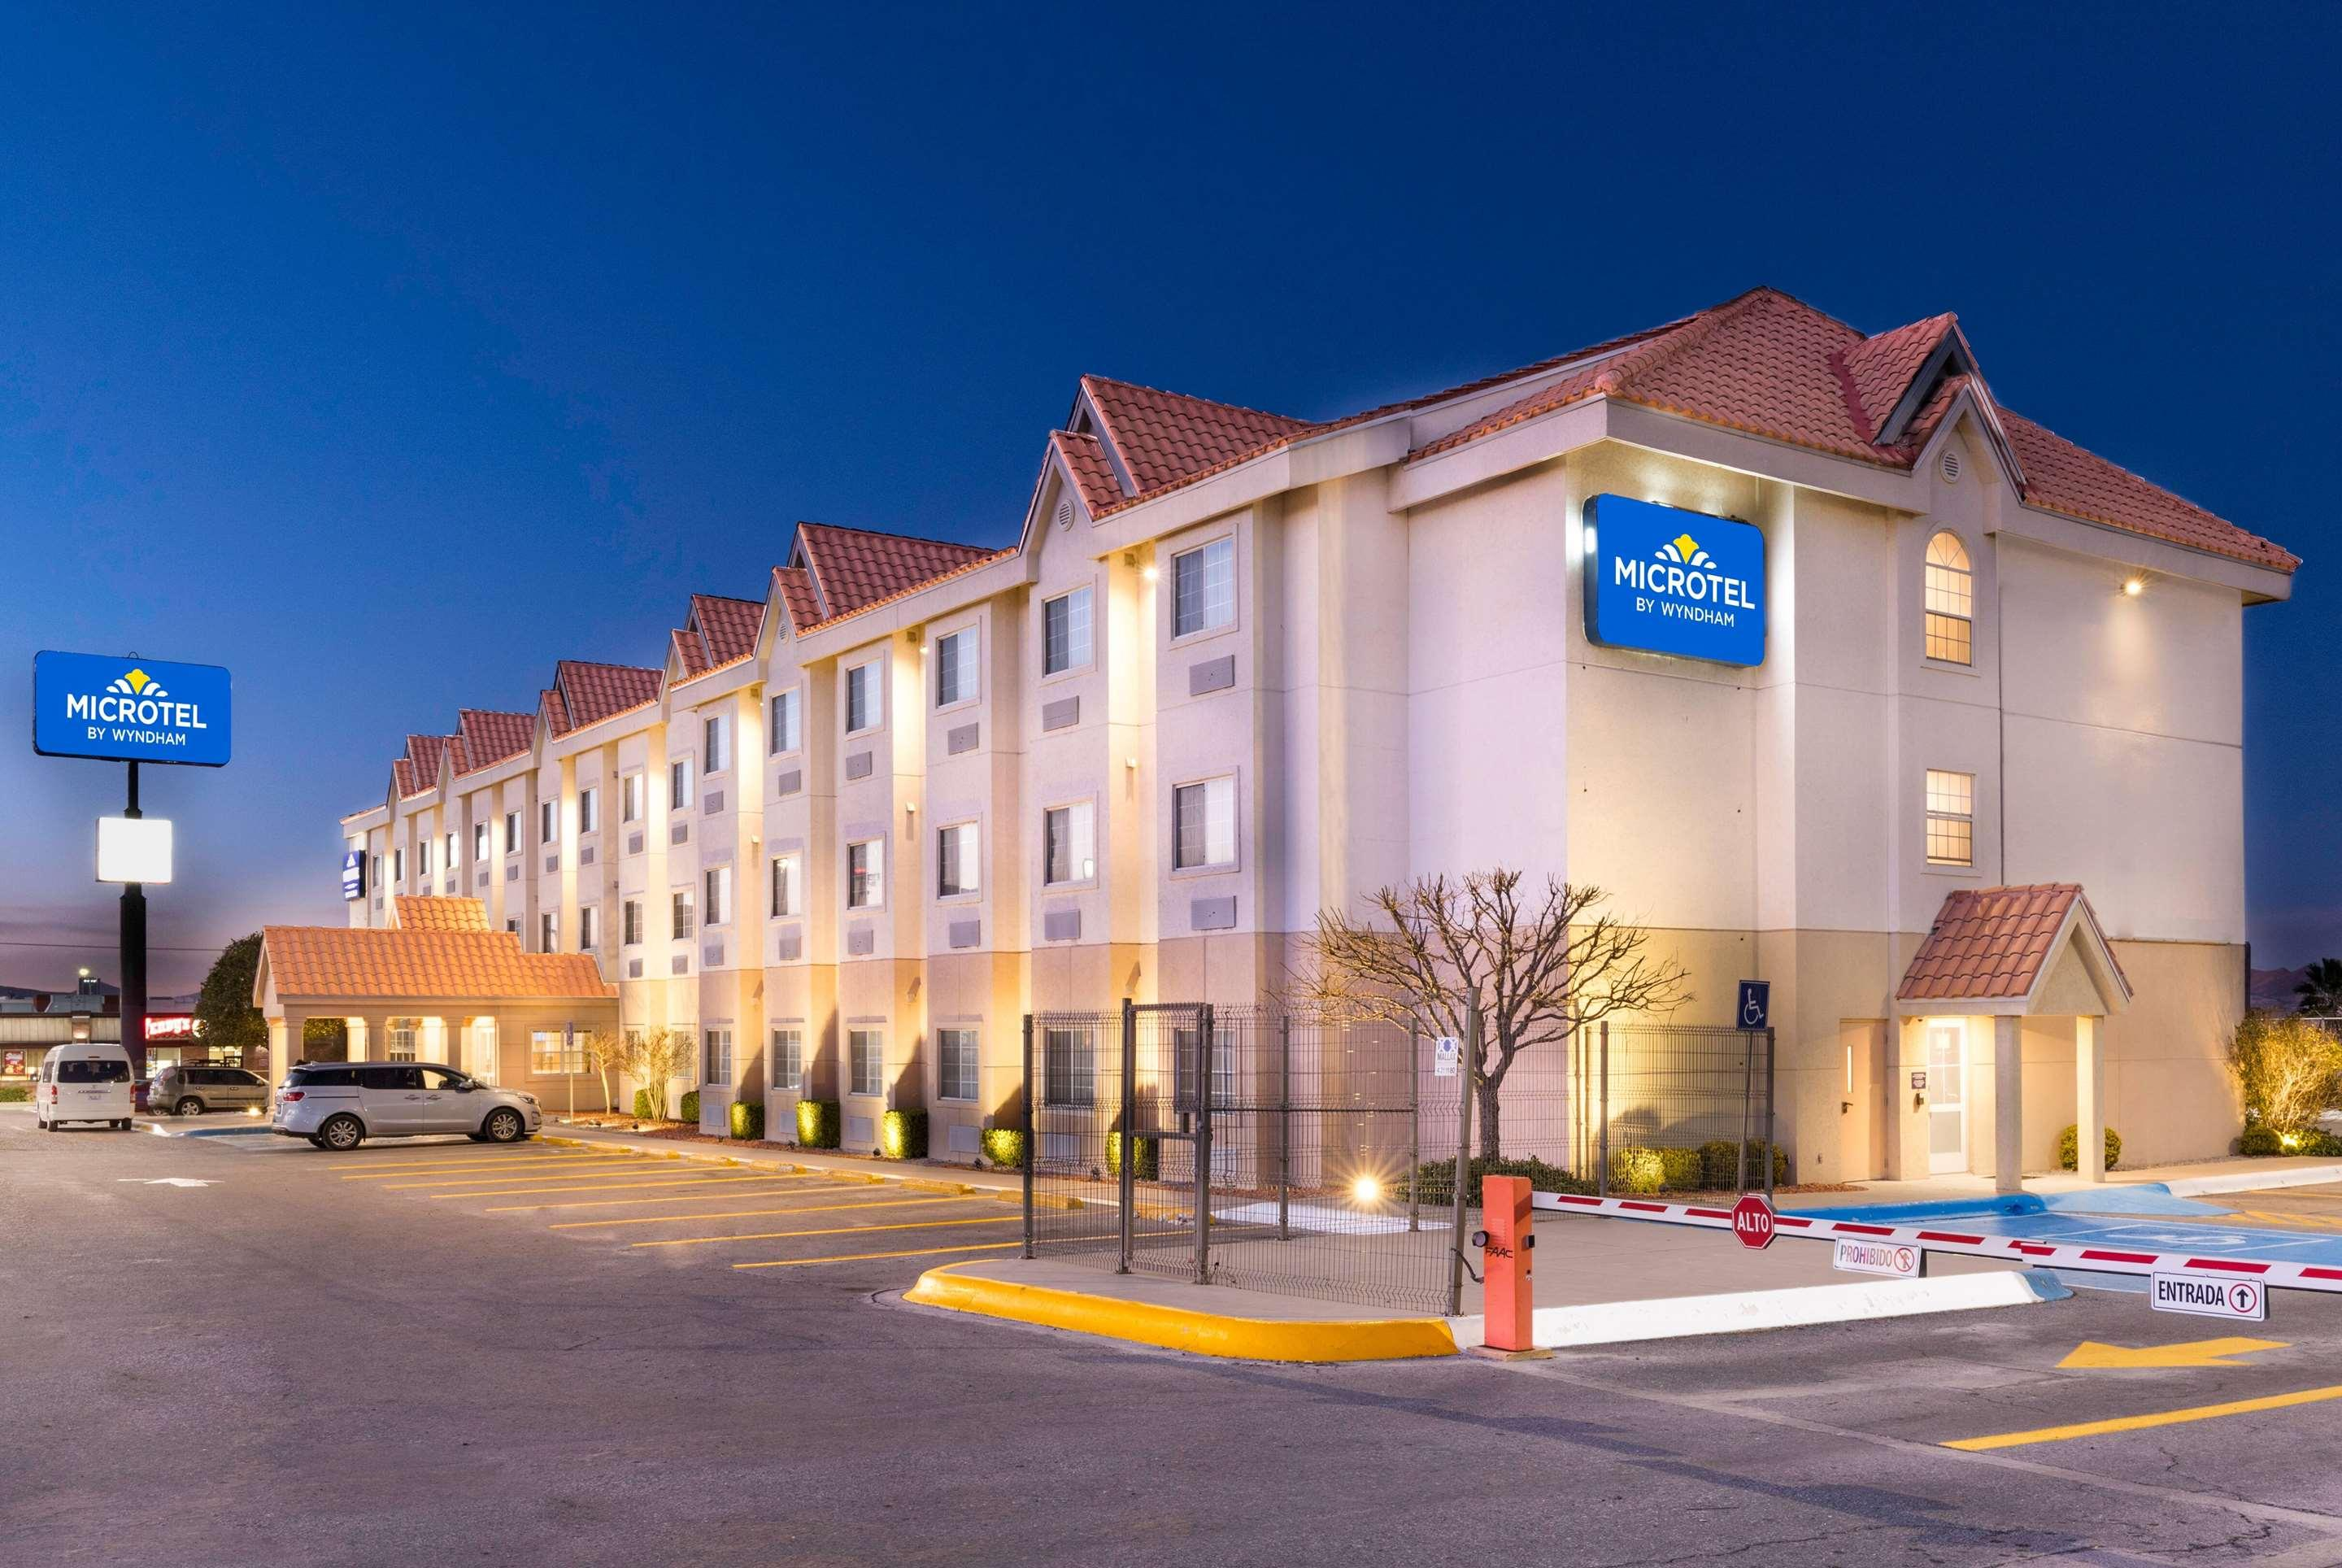 Microtel Inn And Suites by Wyndham Chihuahua